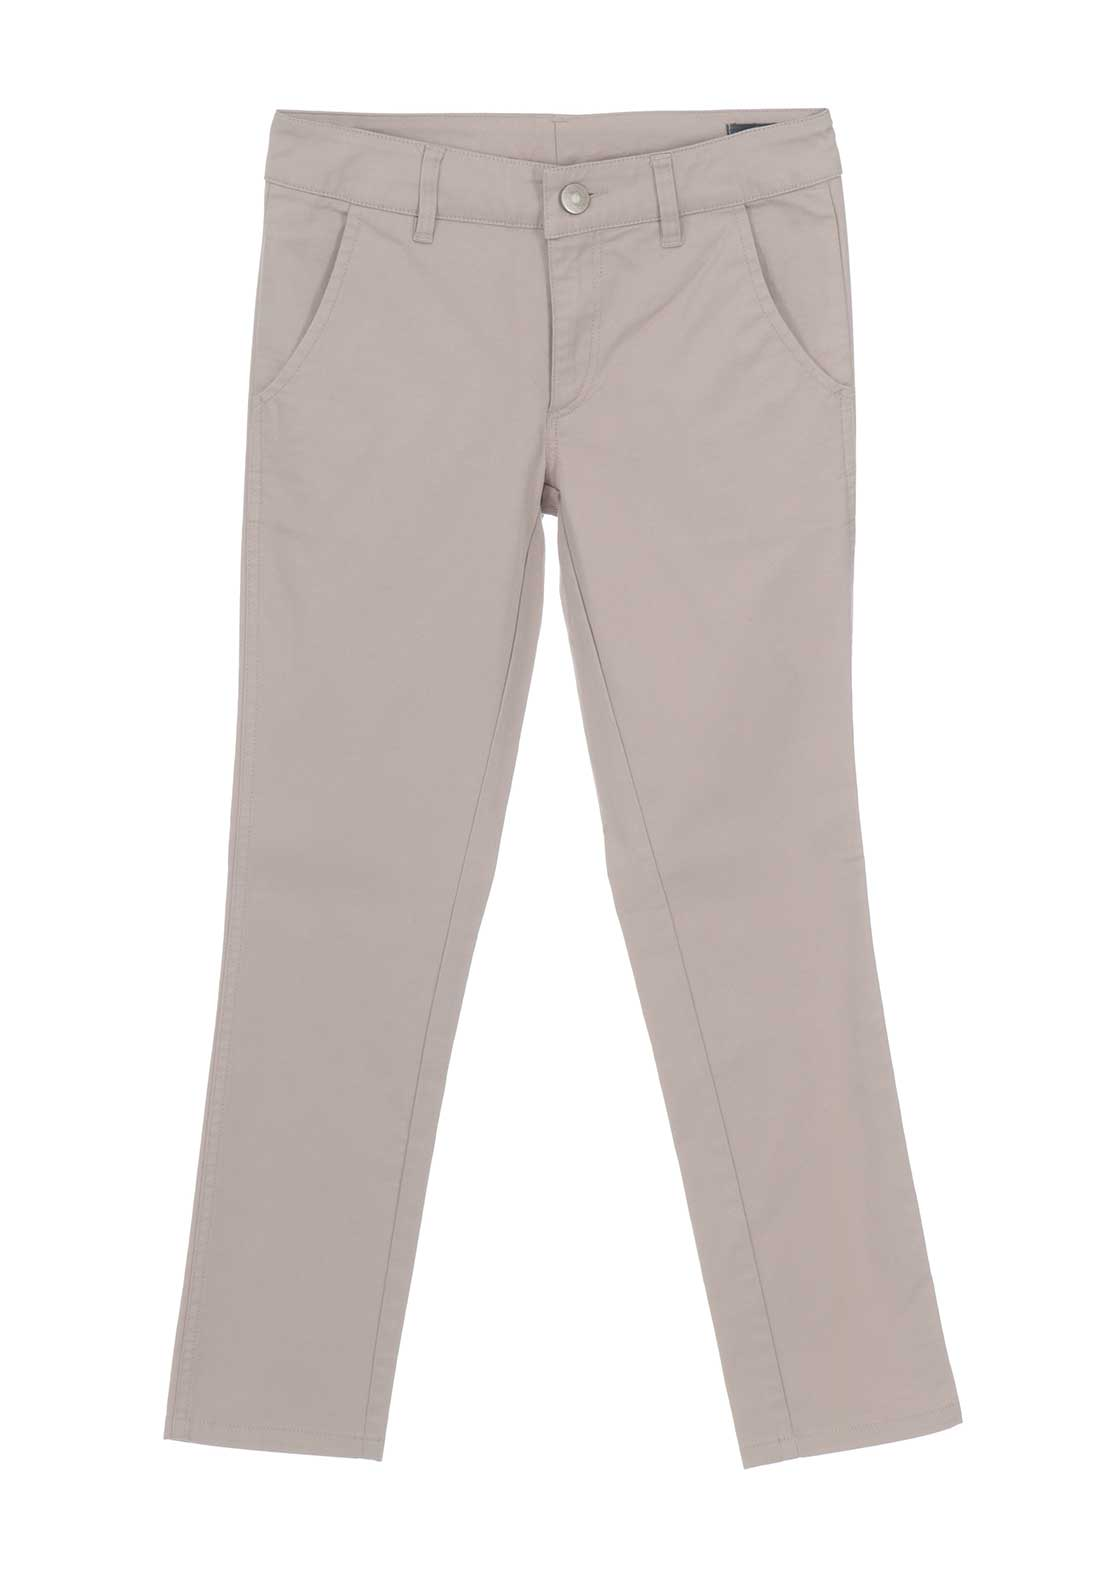 Weise Boys Slim Leg Chino Trousers, Beige